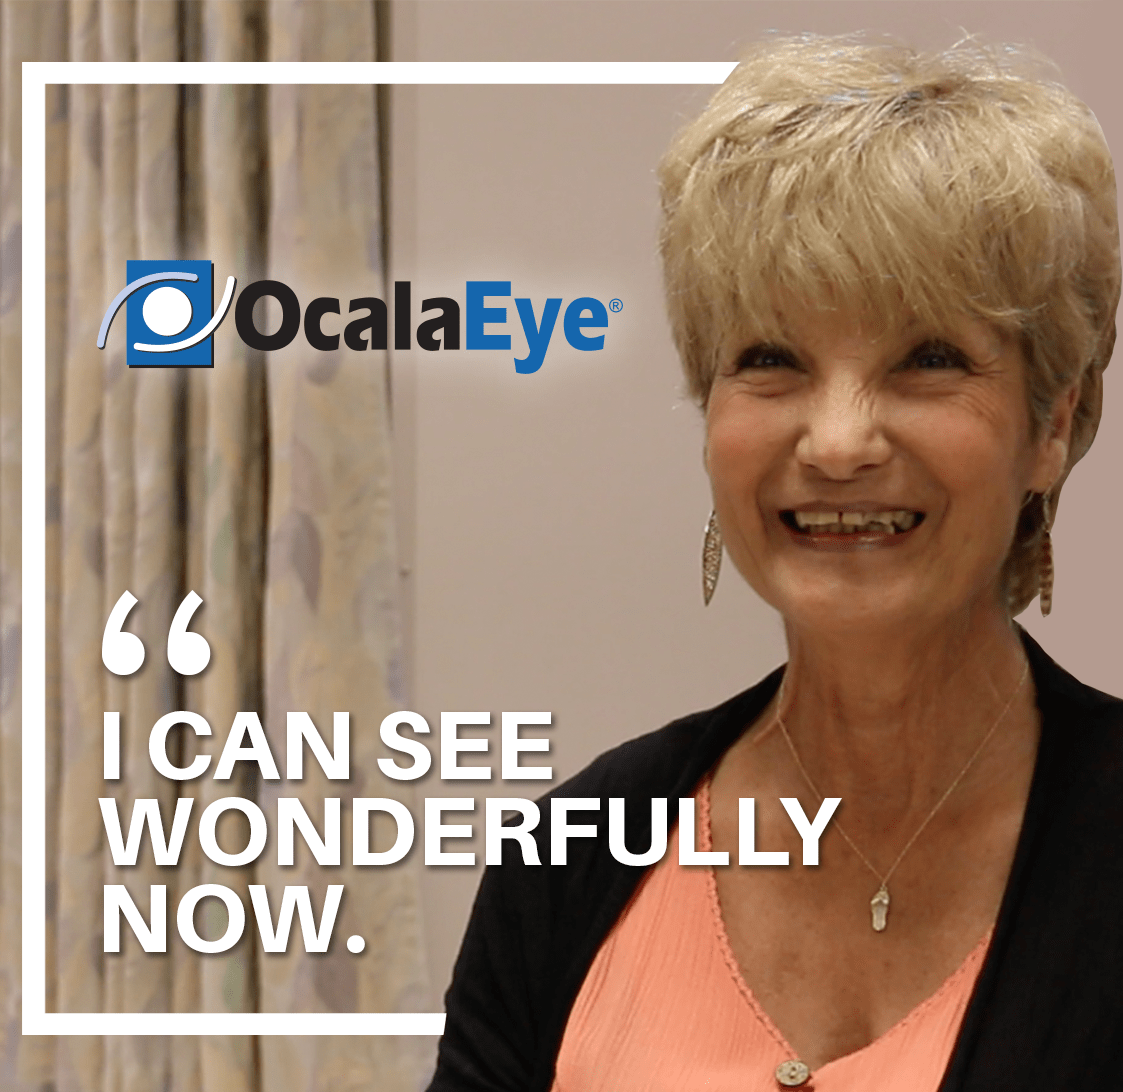 Cataract Surgery Success in Ocala